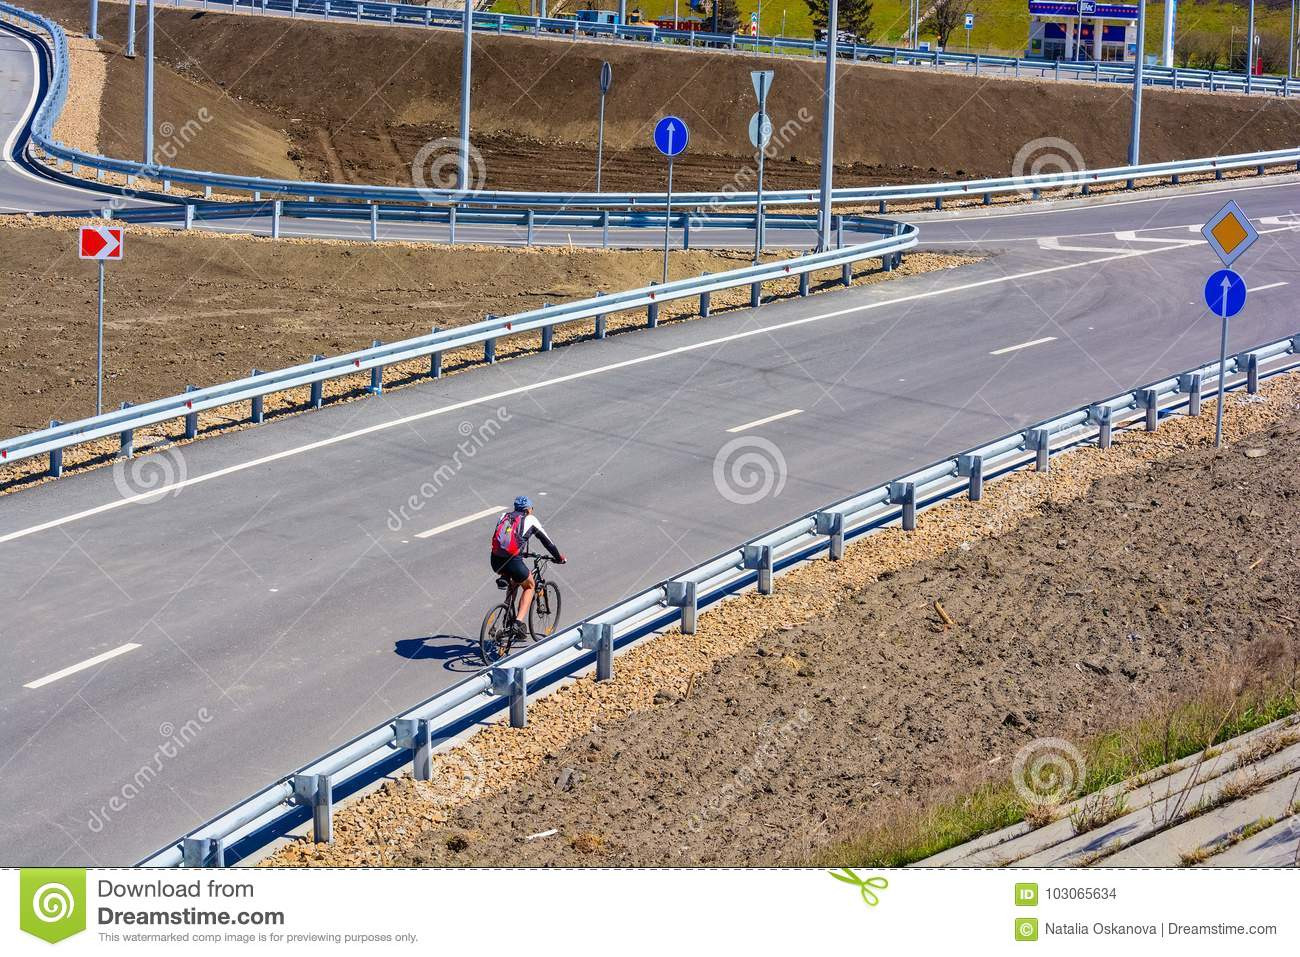 Cyclist on city road with no traffic